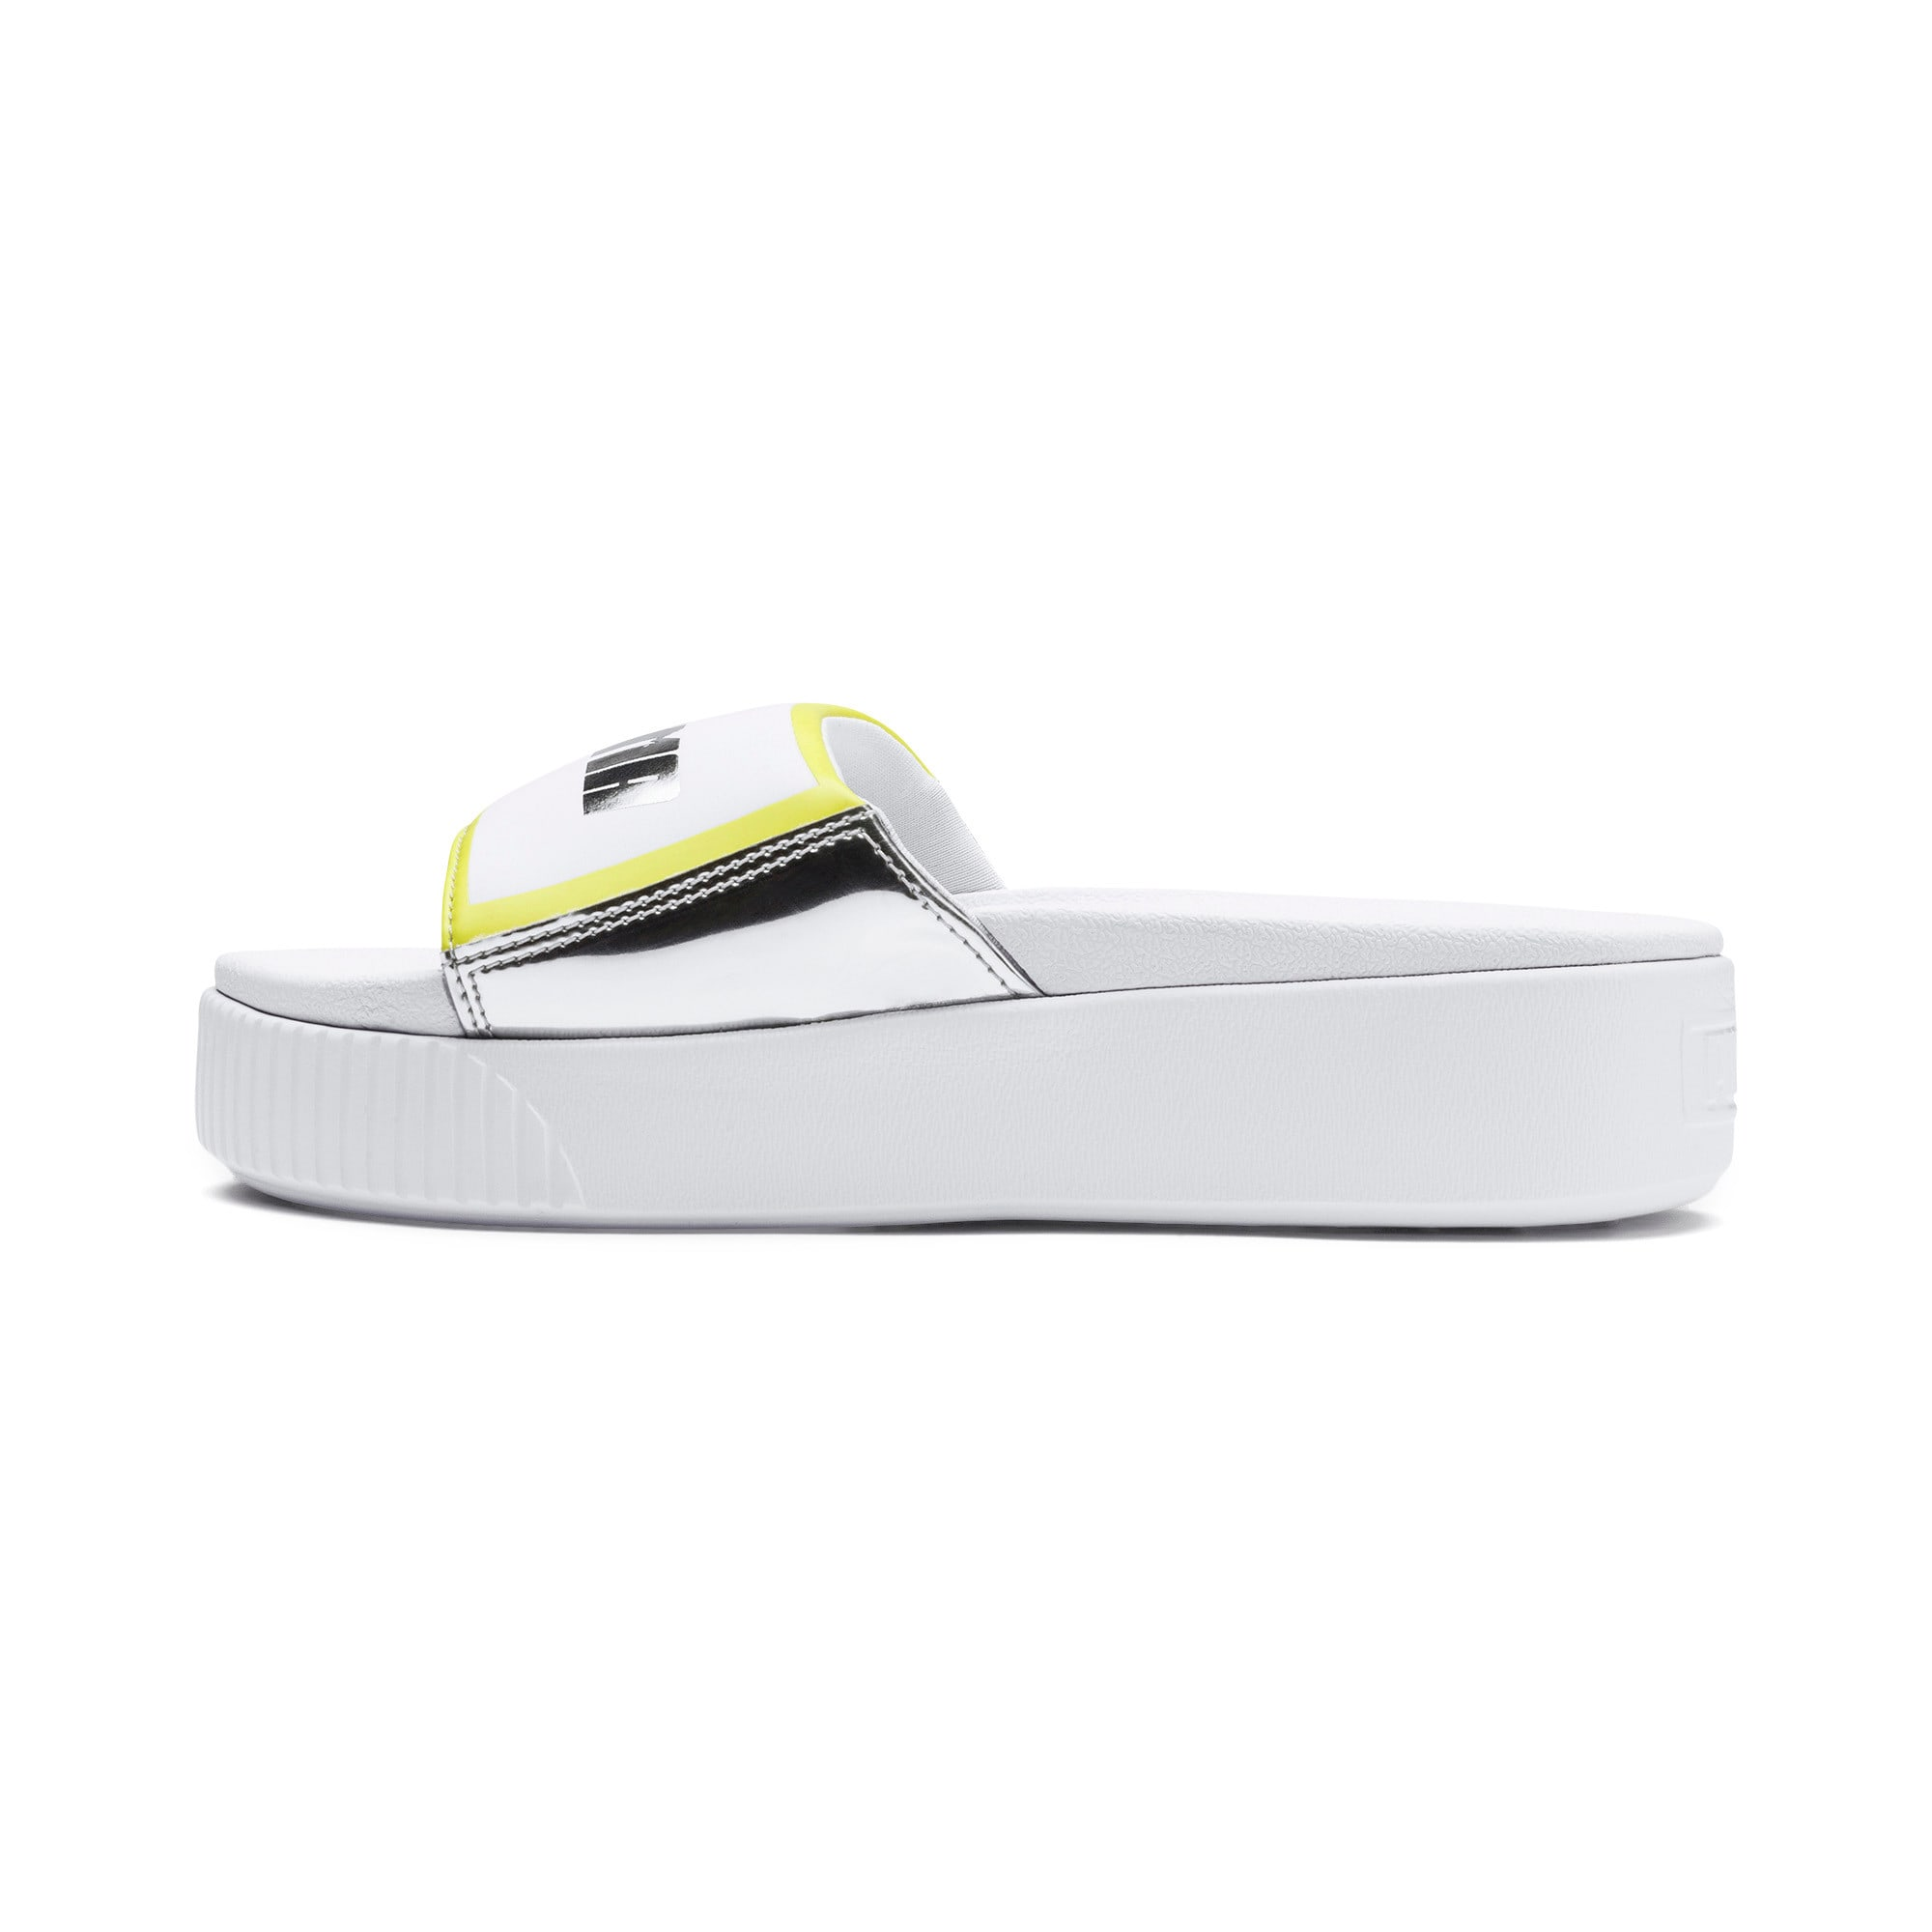 Thumbnail 1 of Platform Slide Trailblazer Metallic Women's Sandals, Puma White-Puma Silver, medium